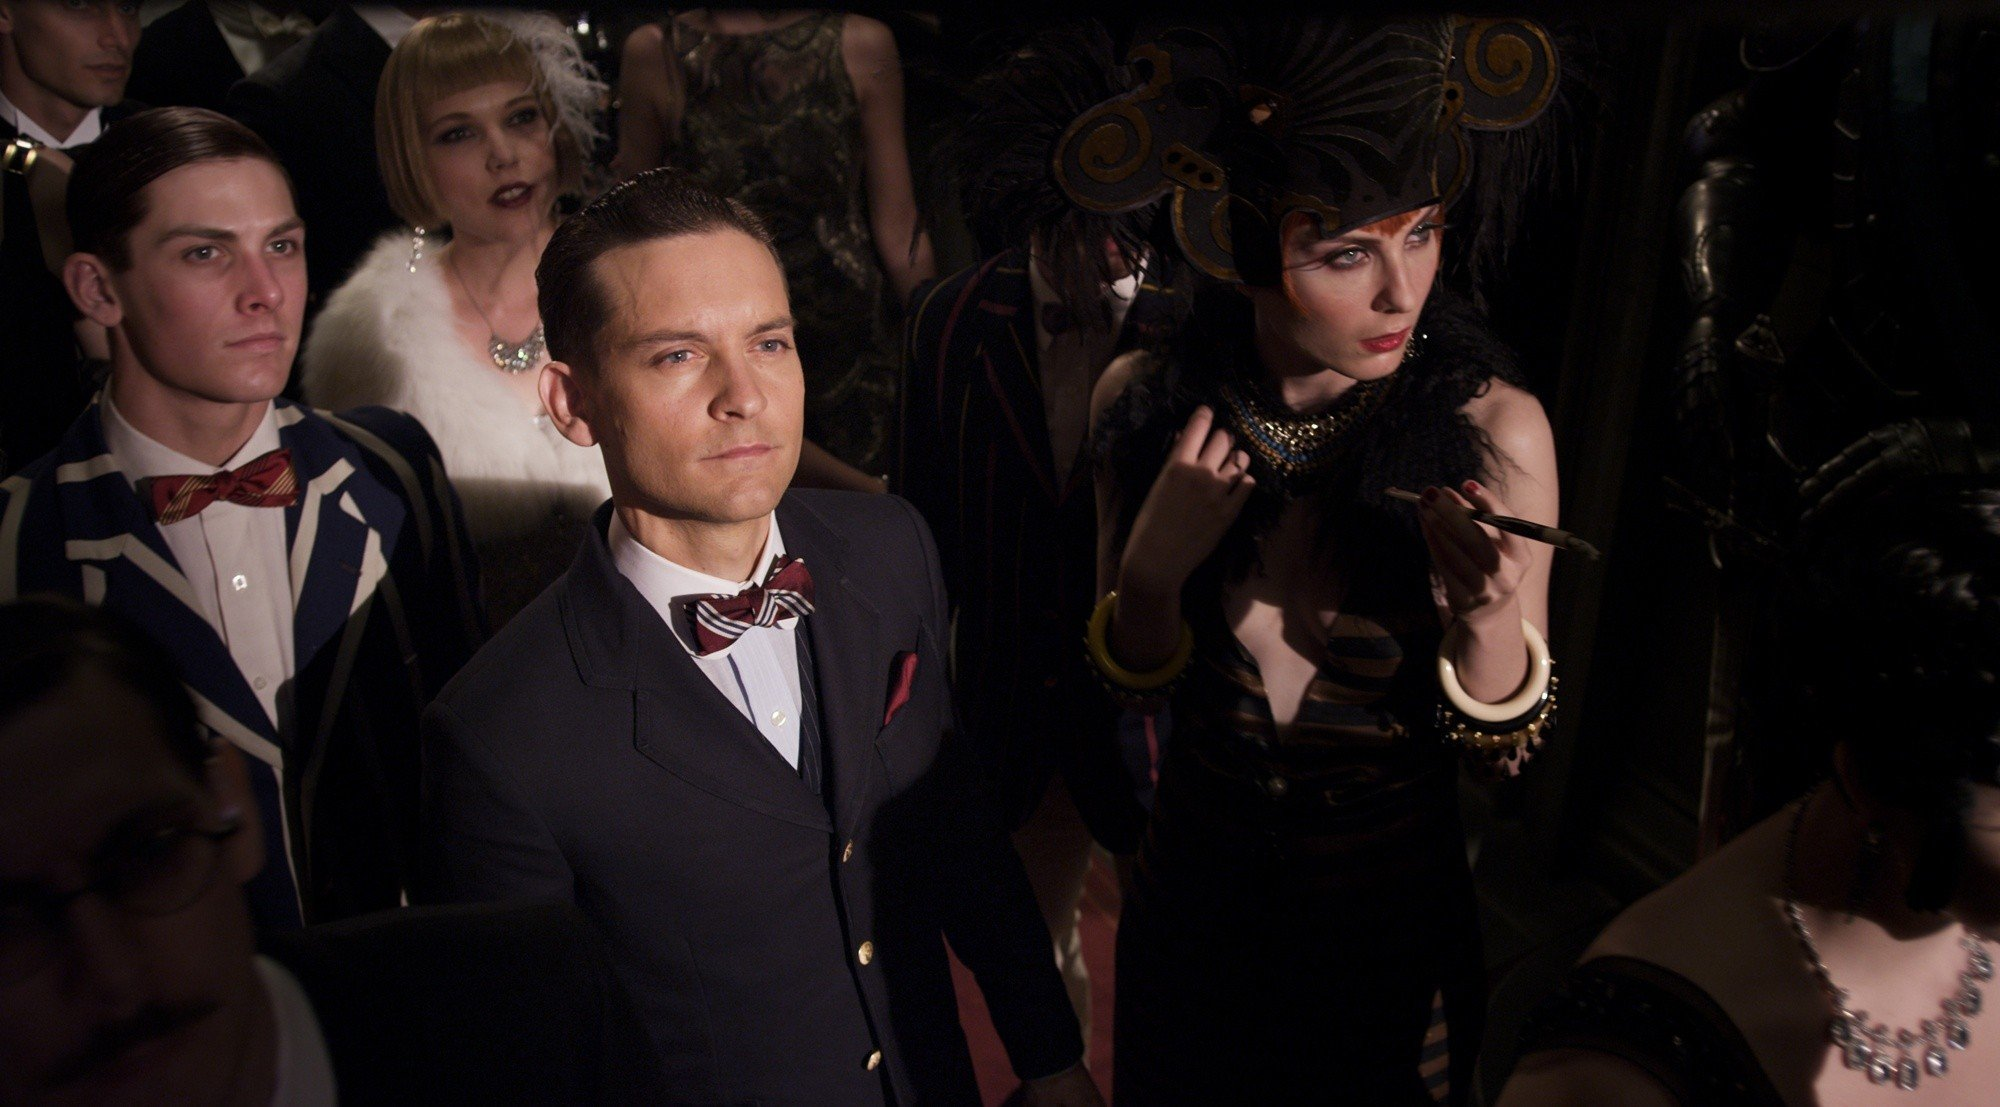 Tobey Maguire stars as Nick Carraway and Elizabeth Debicki stars as Jordan Baker in Warner Bros. Pictures' The Great Gatsby (2013)